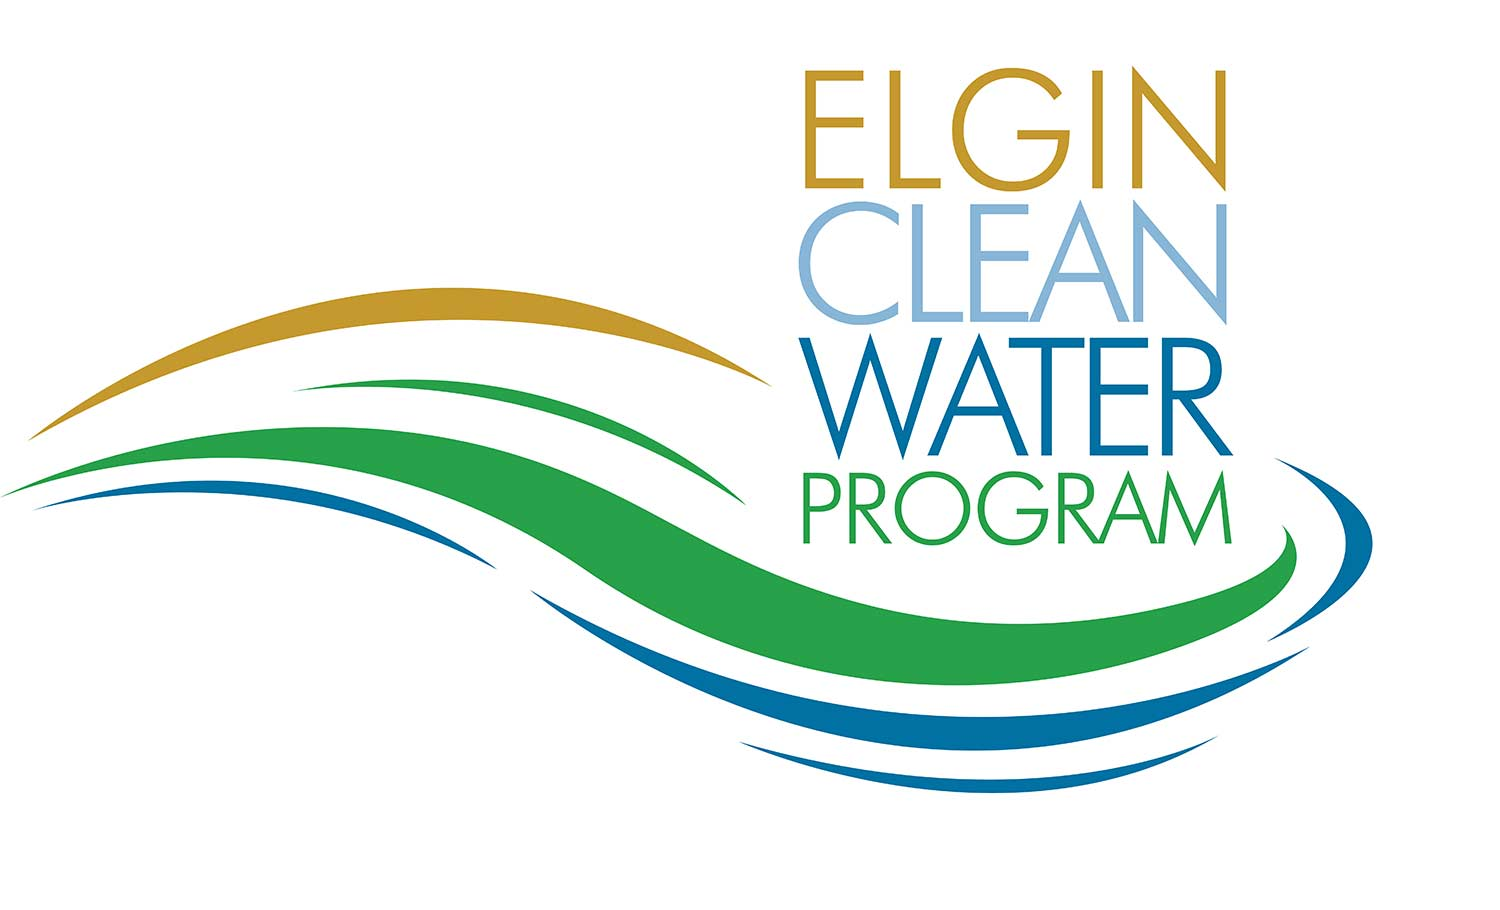 Elgin Clean Water Program